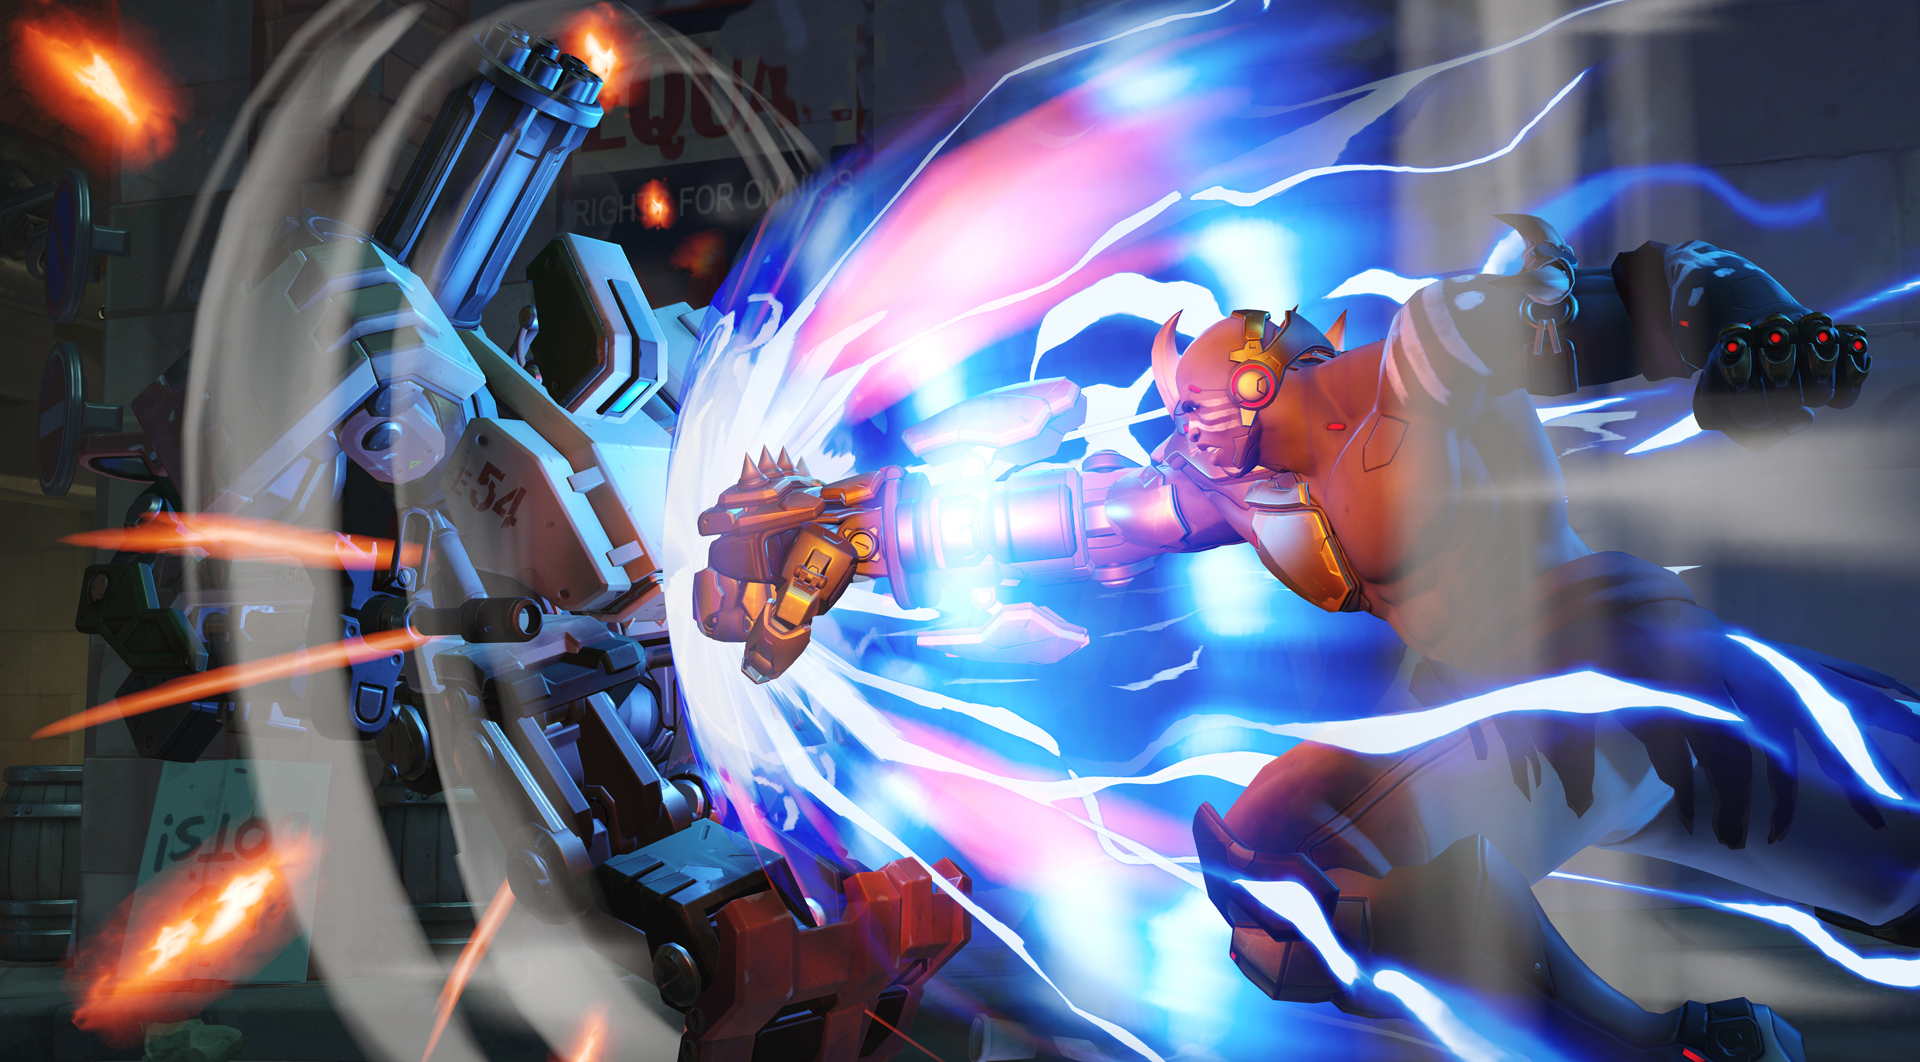 No more teasing, Doomfist is playable on the Overwatch PTR now screenshot